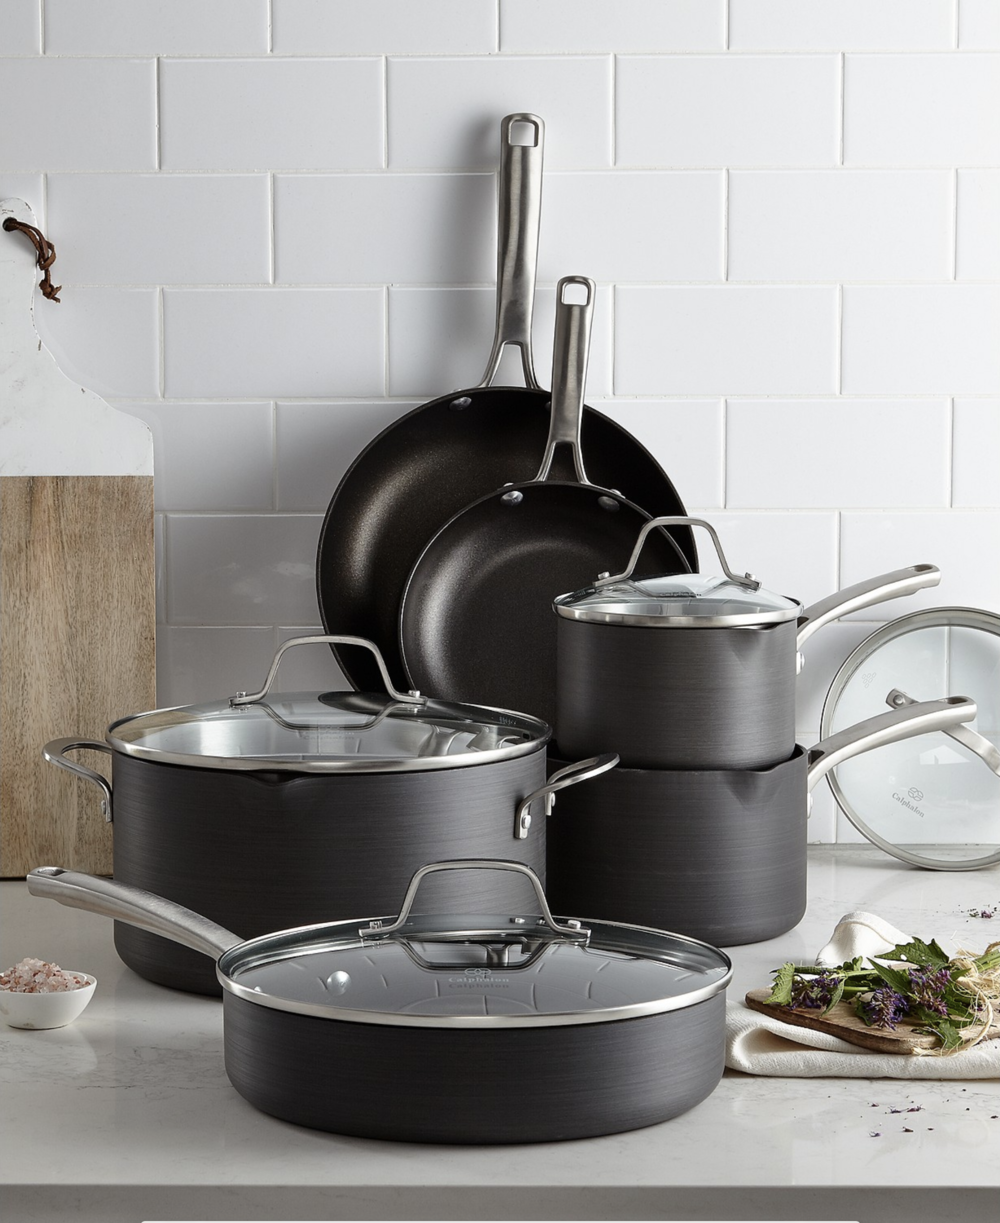 Cooking pots and pans recommended off my wedding registry